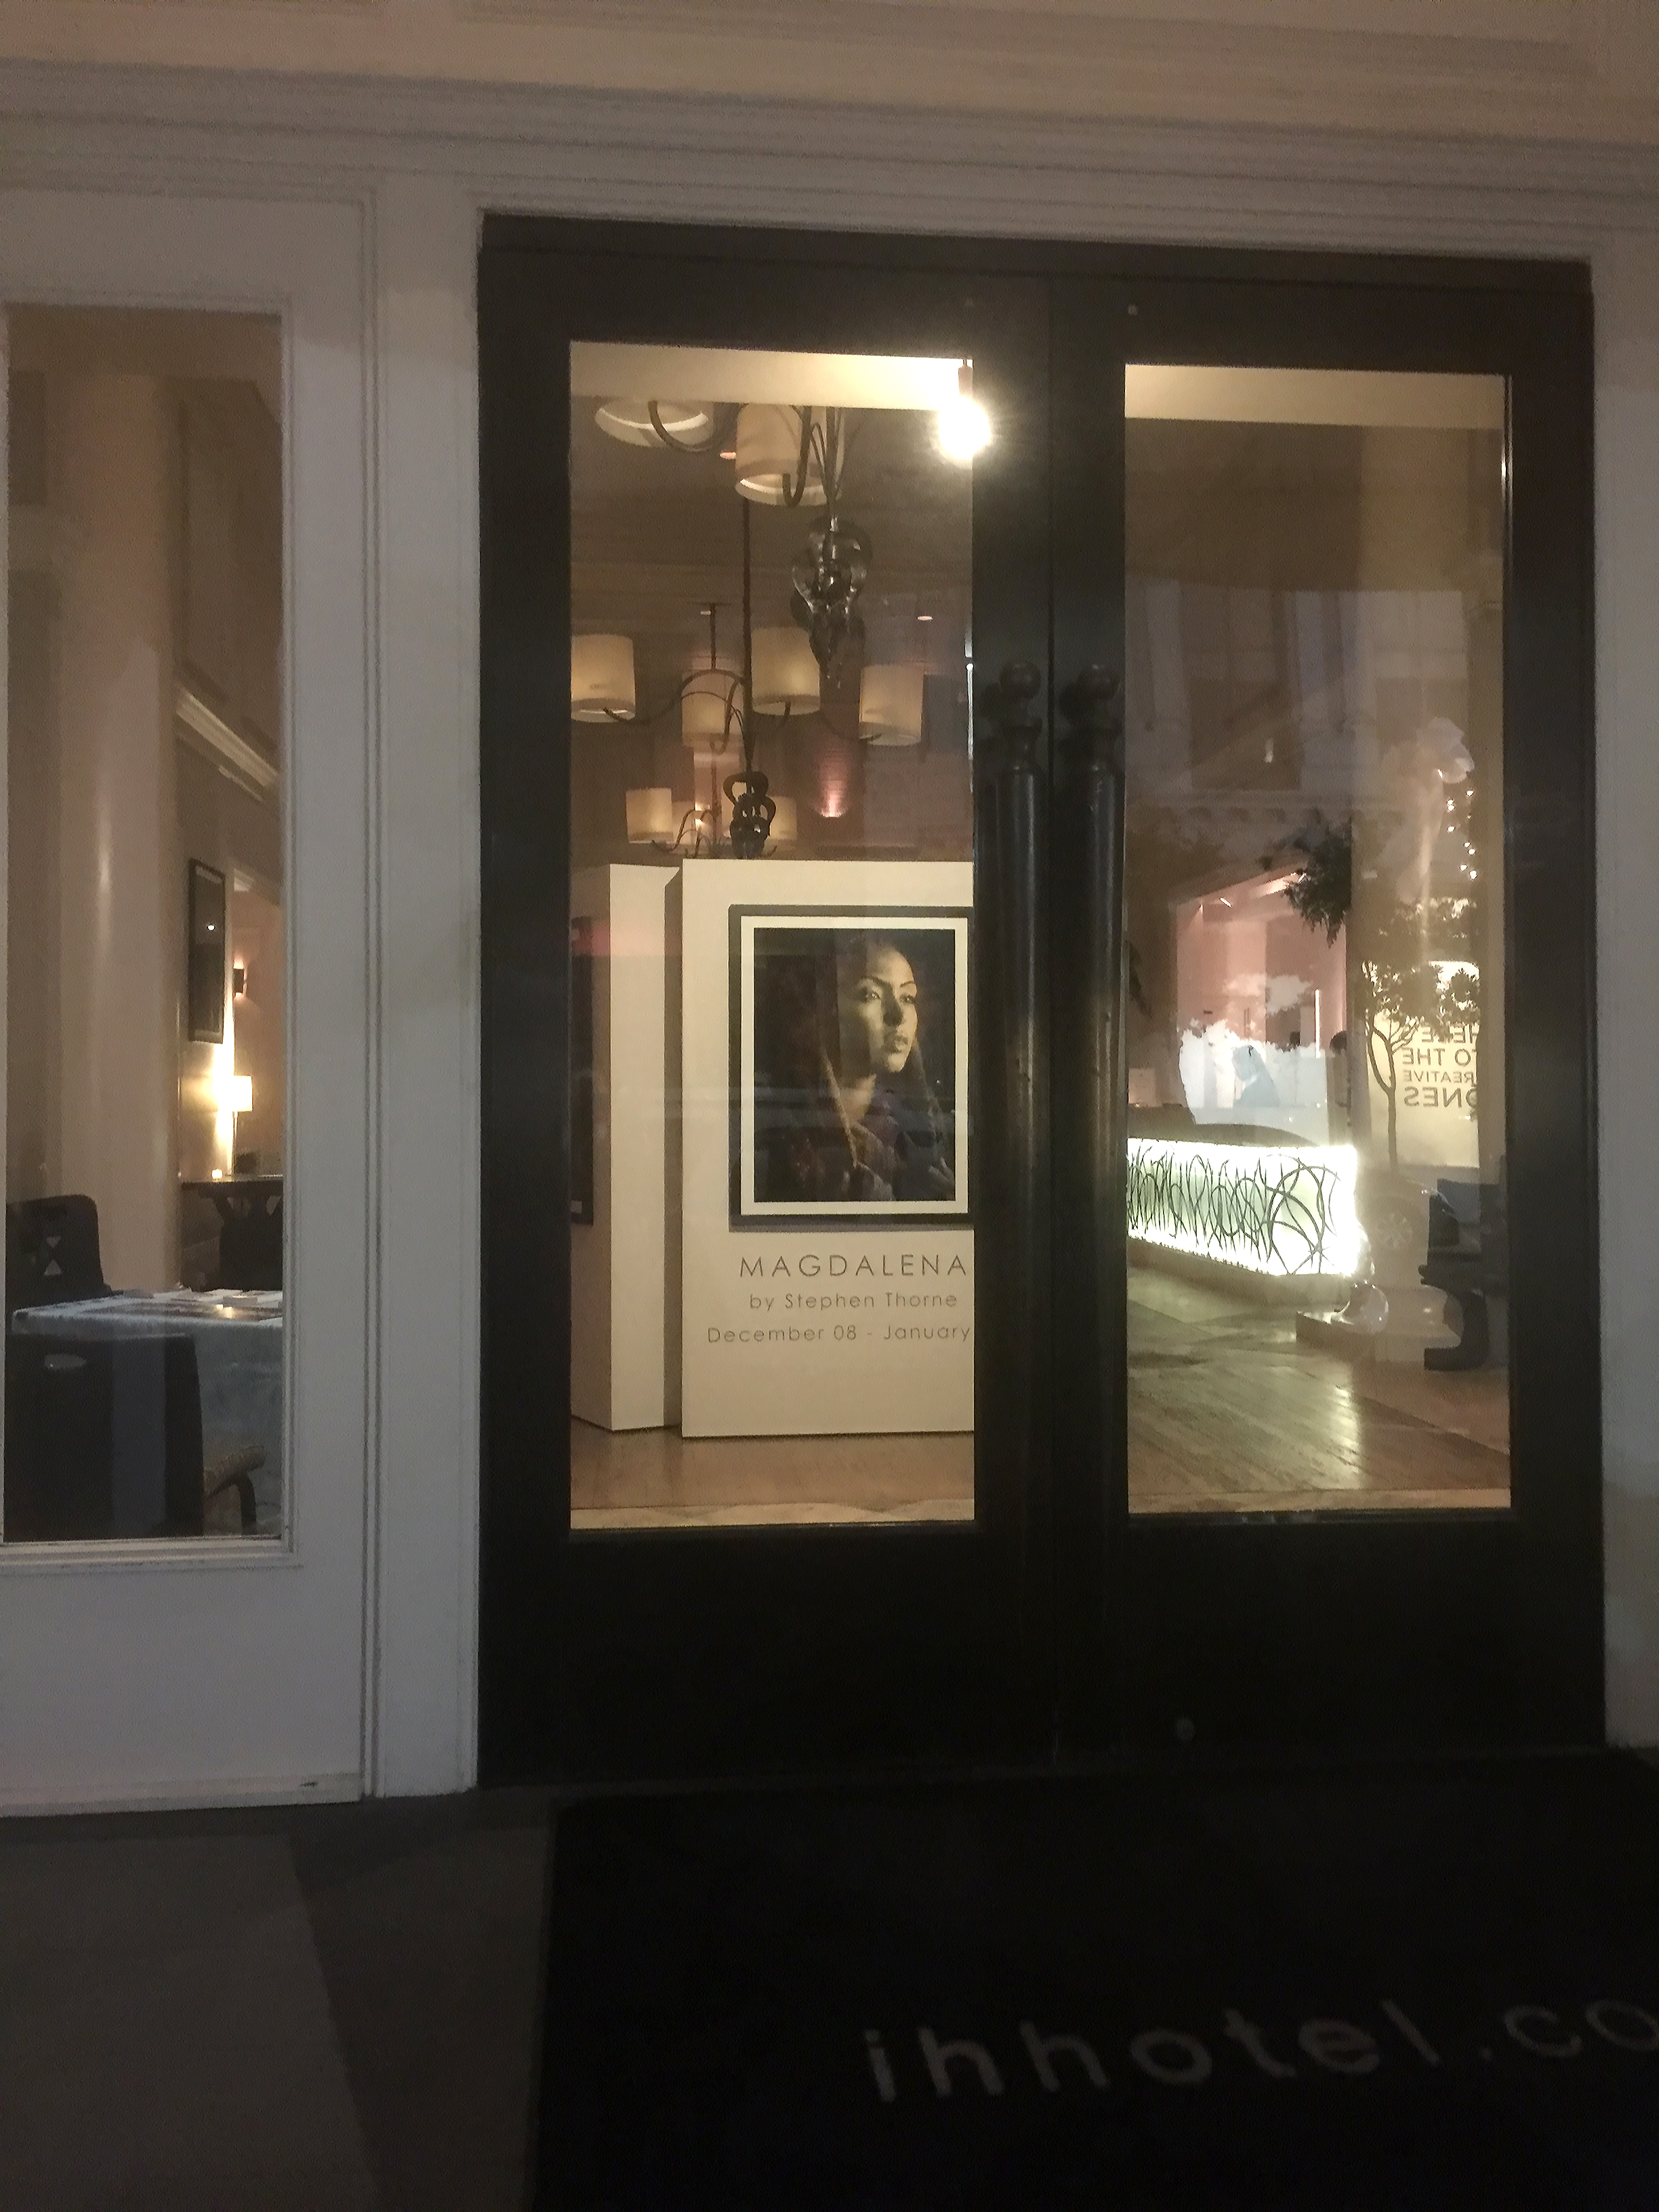 Magdalena  solo exhibition at the International House in New Orleans, December 2016.